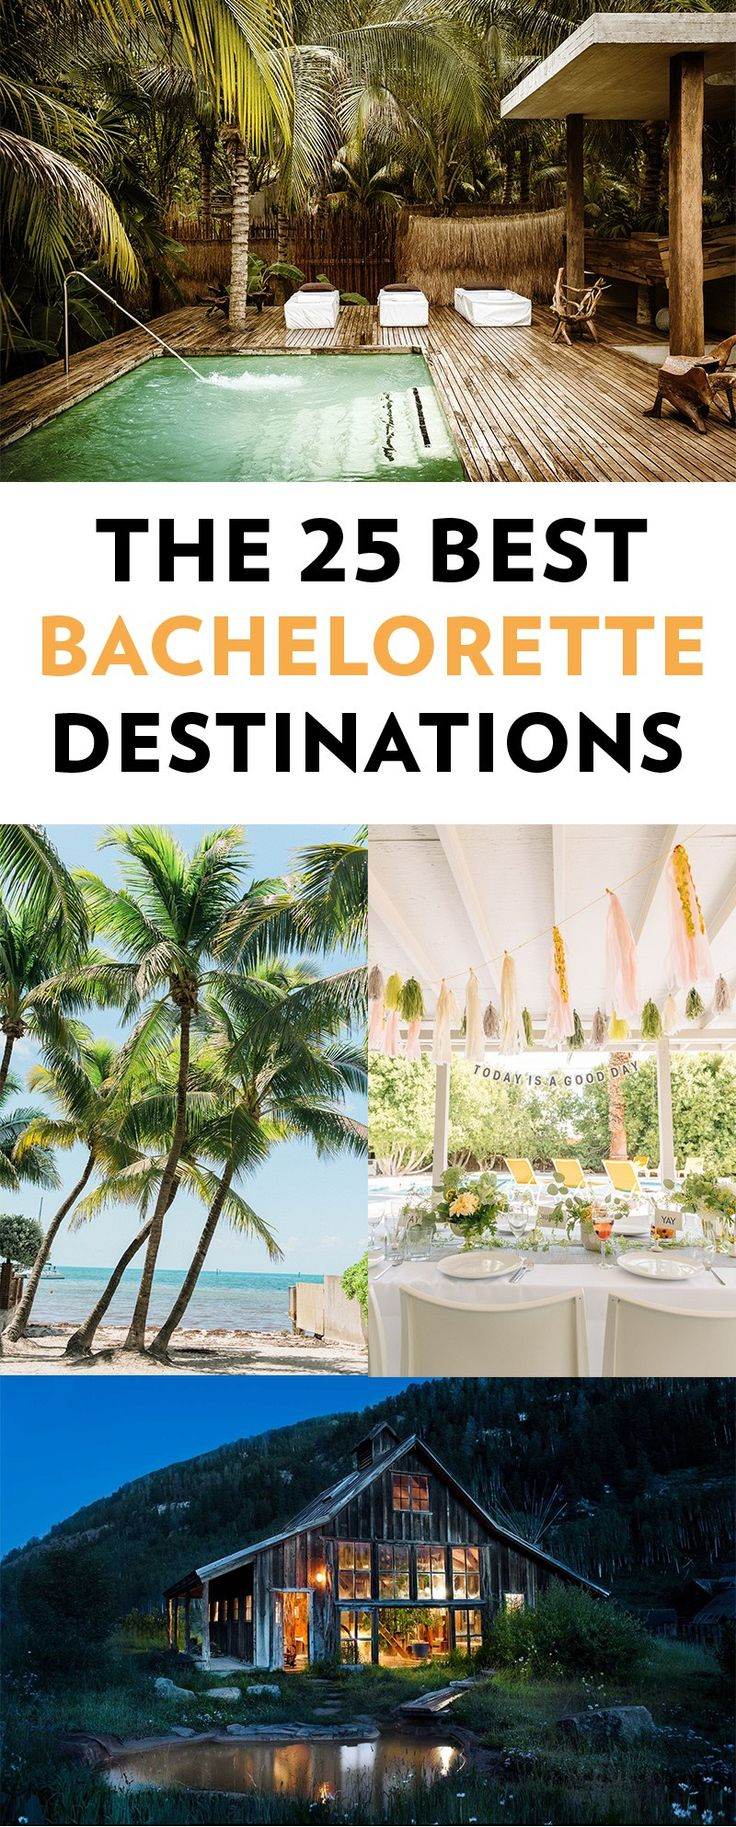 | Whether you are looking for a beach bachelorette, a getaway weekend to the city, a mountain retreat or a spa weekend away, we have the best bachelorette cities to help you find your perfect party getaway. Click to see them all!